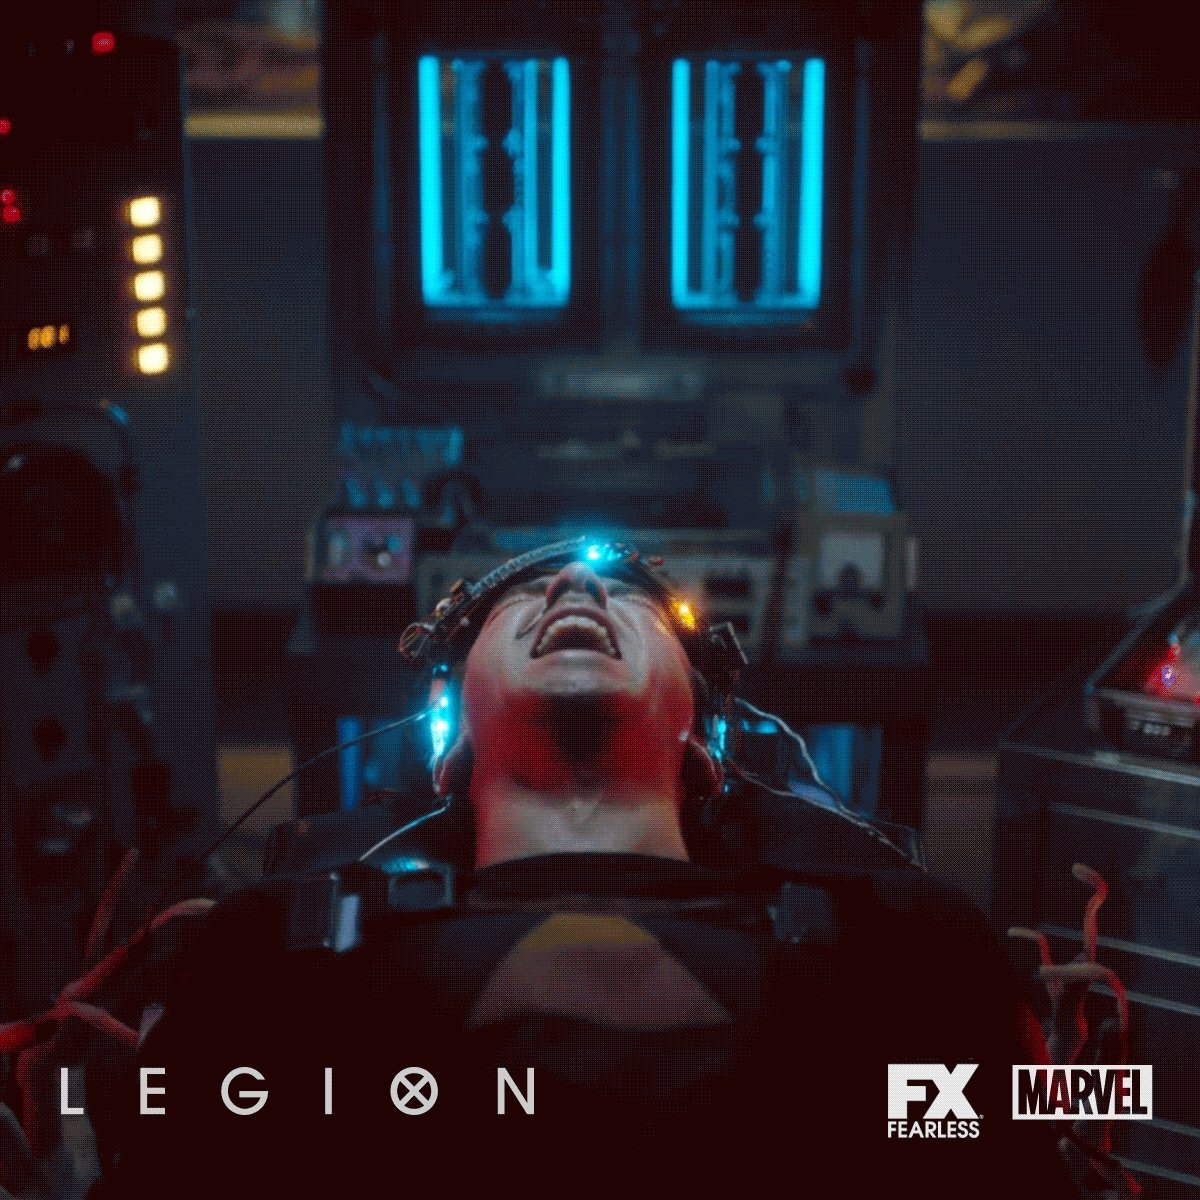 Grappling with co-dependency issues. #LegionFX https://t.co/y6OefKHNzu